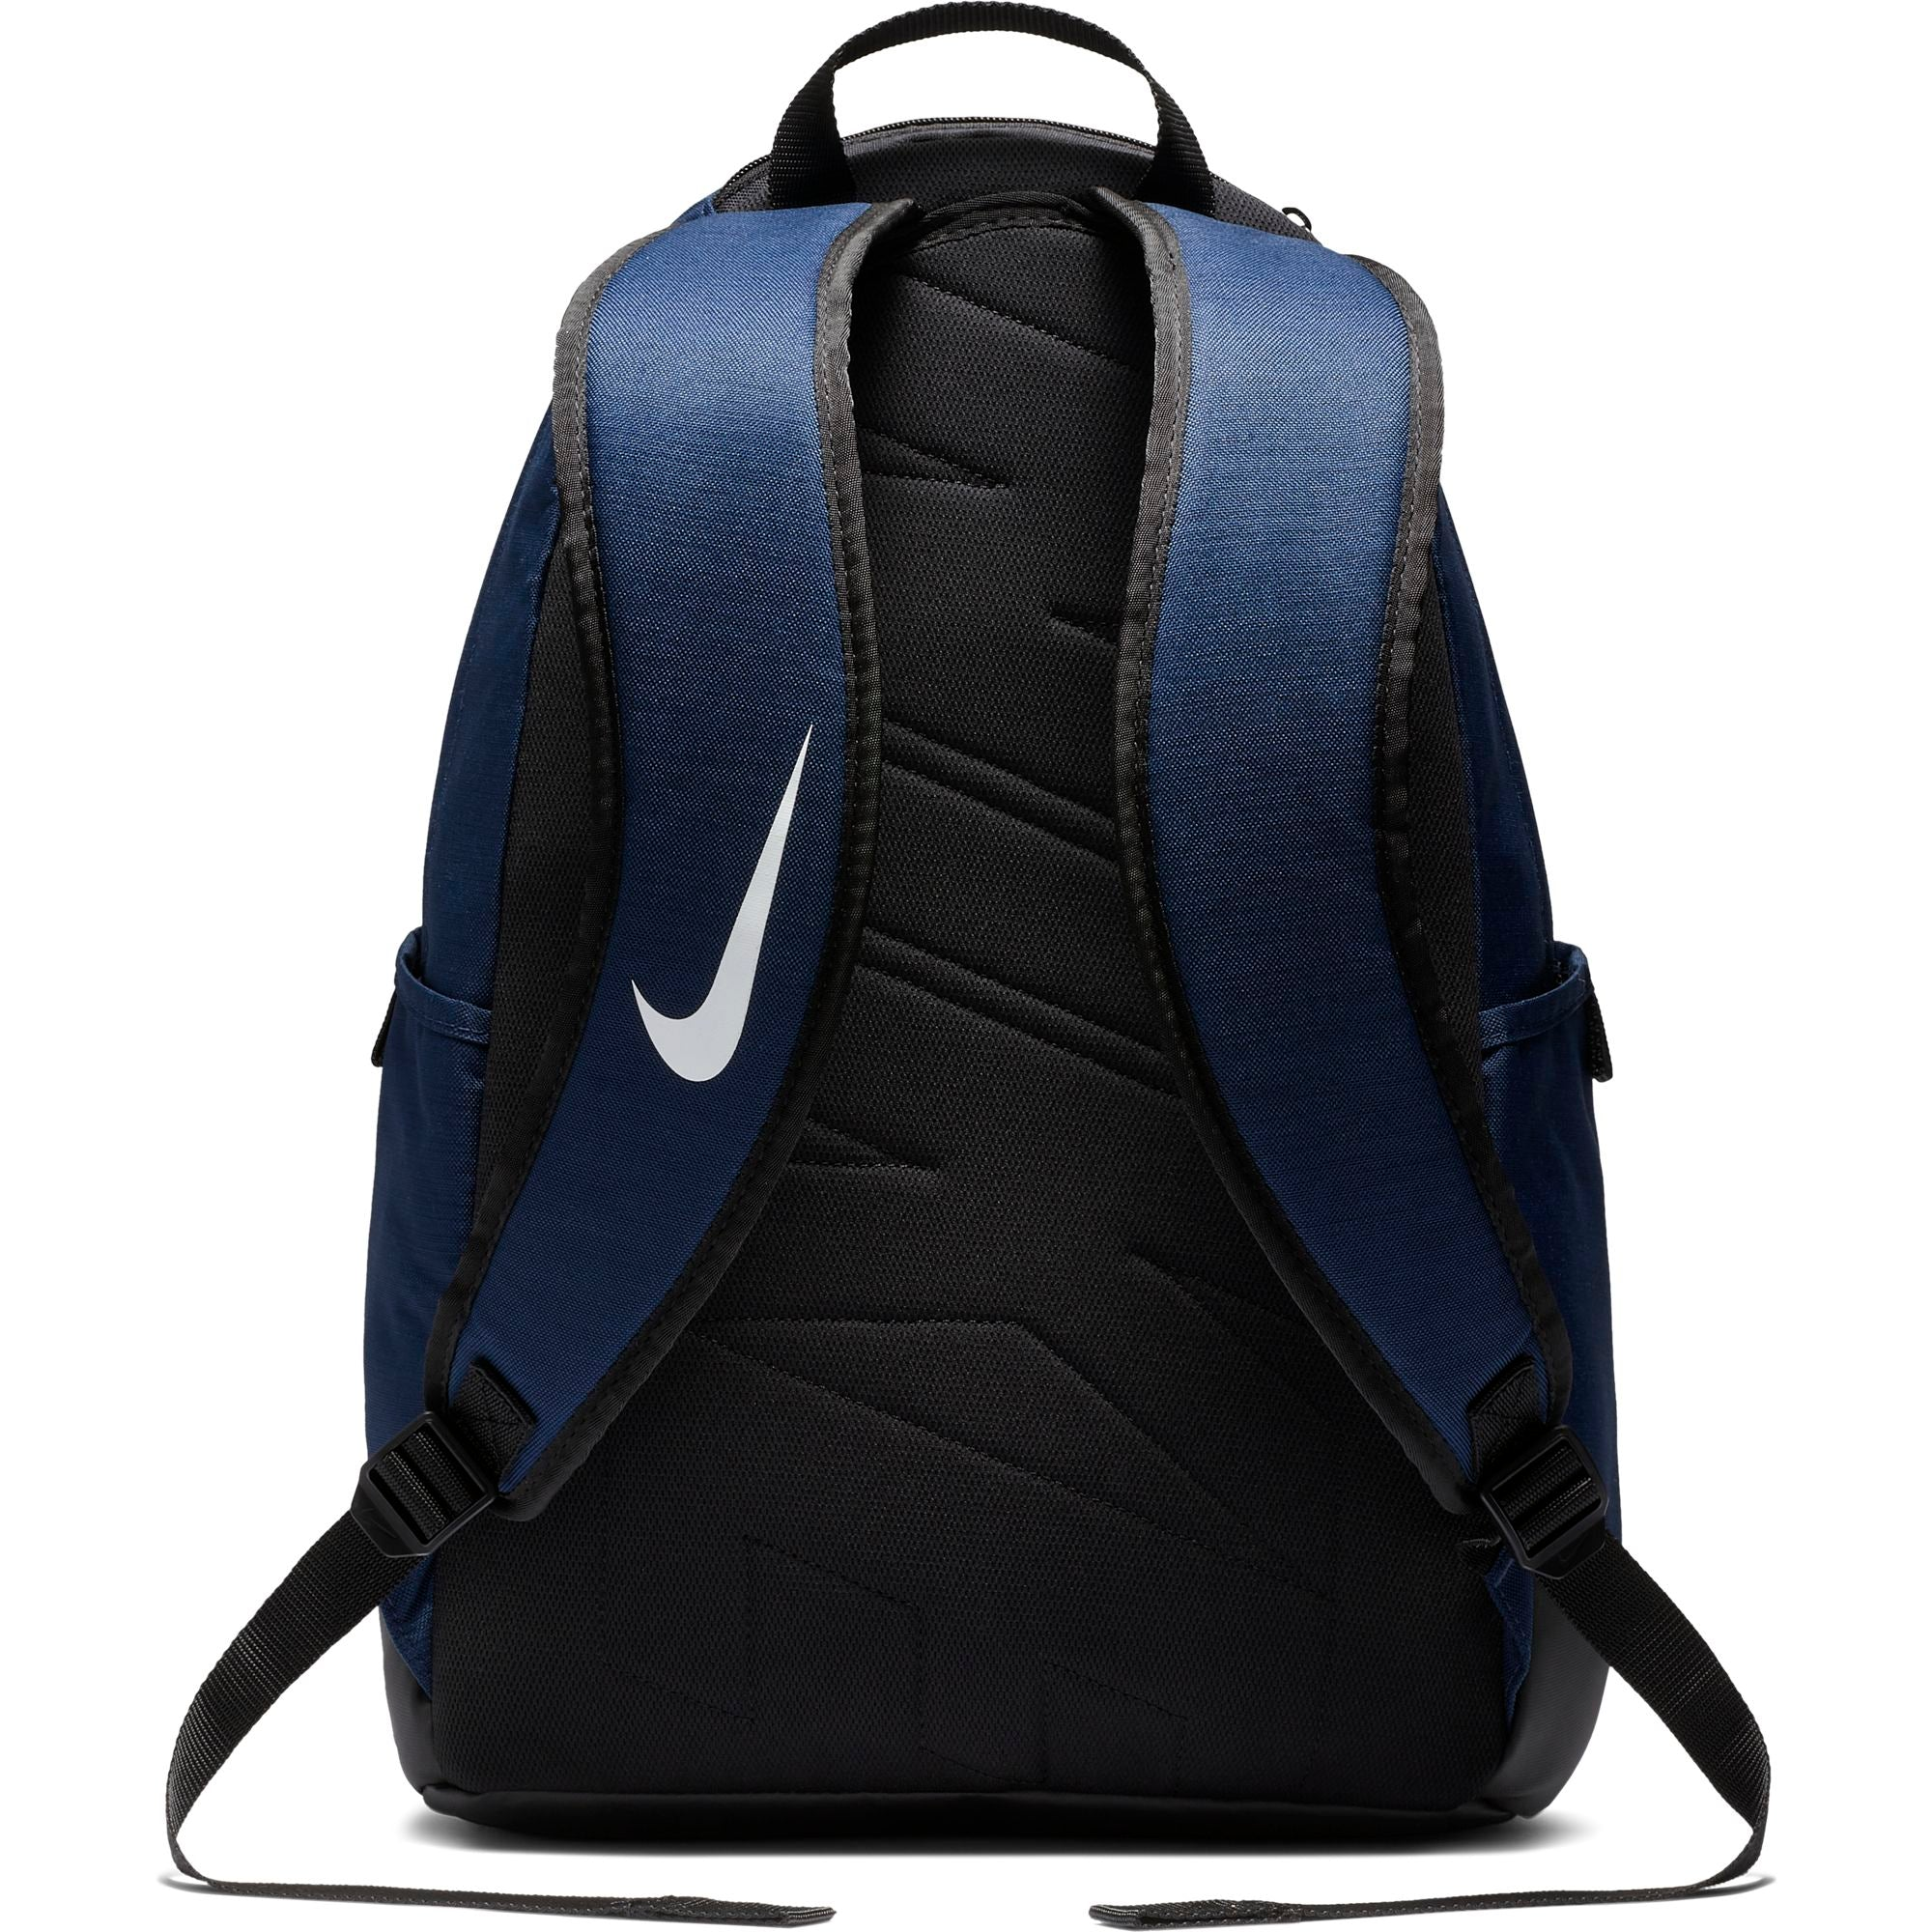 Nike Brasilia Backpack (Extra Large) - Midnight Navy/Black/White